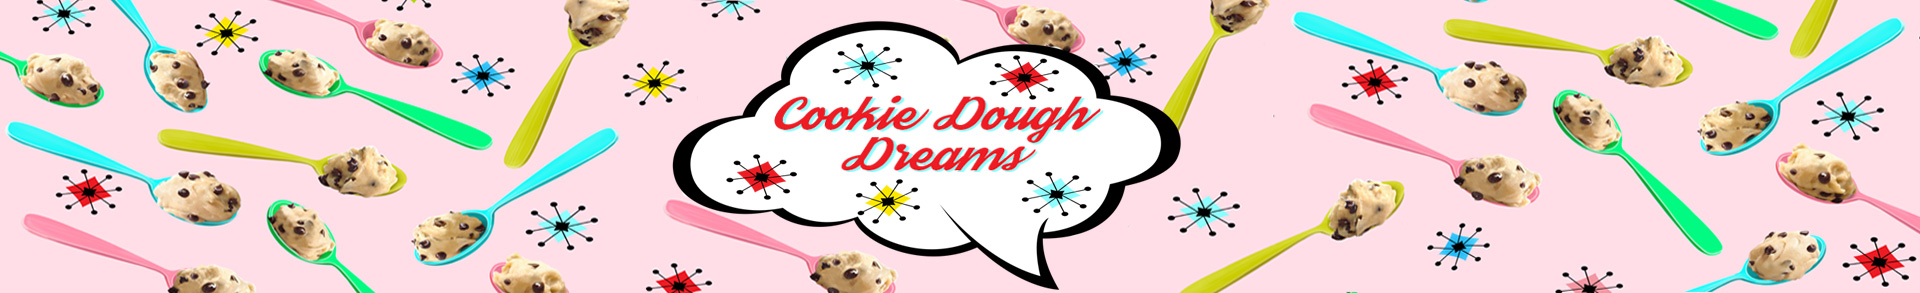 cooke dough los angeles